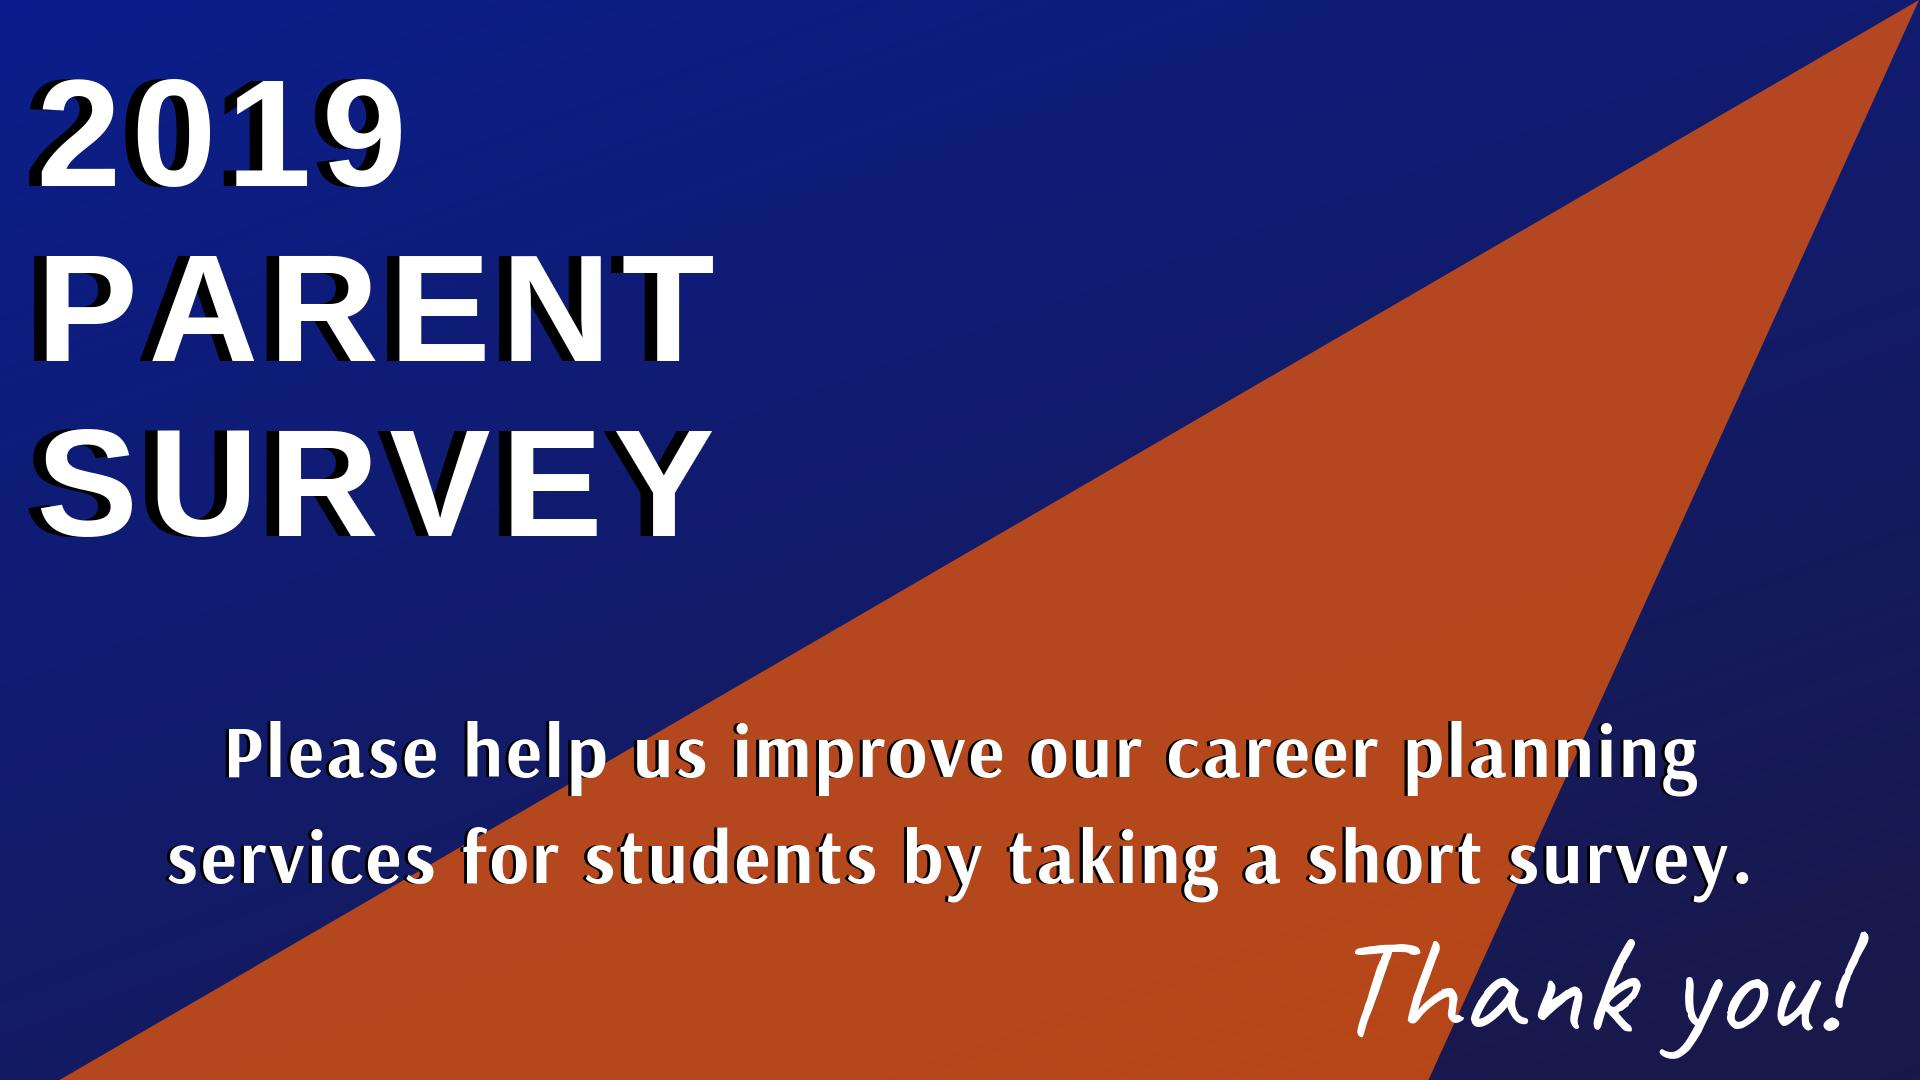 Thank you for completing the Parent Survey!